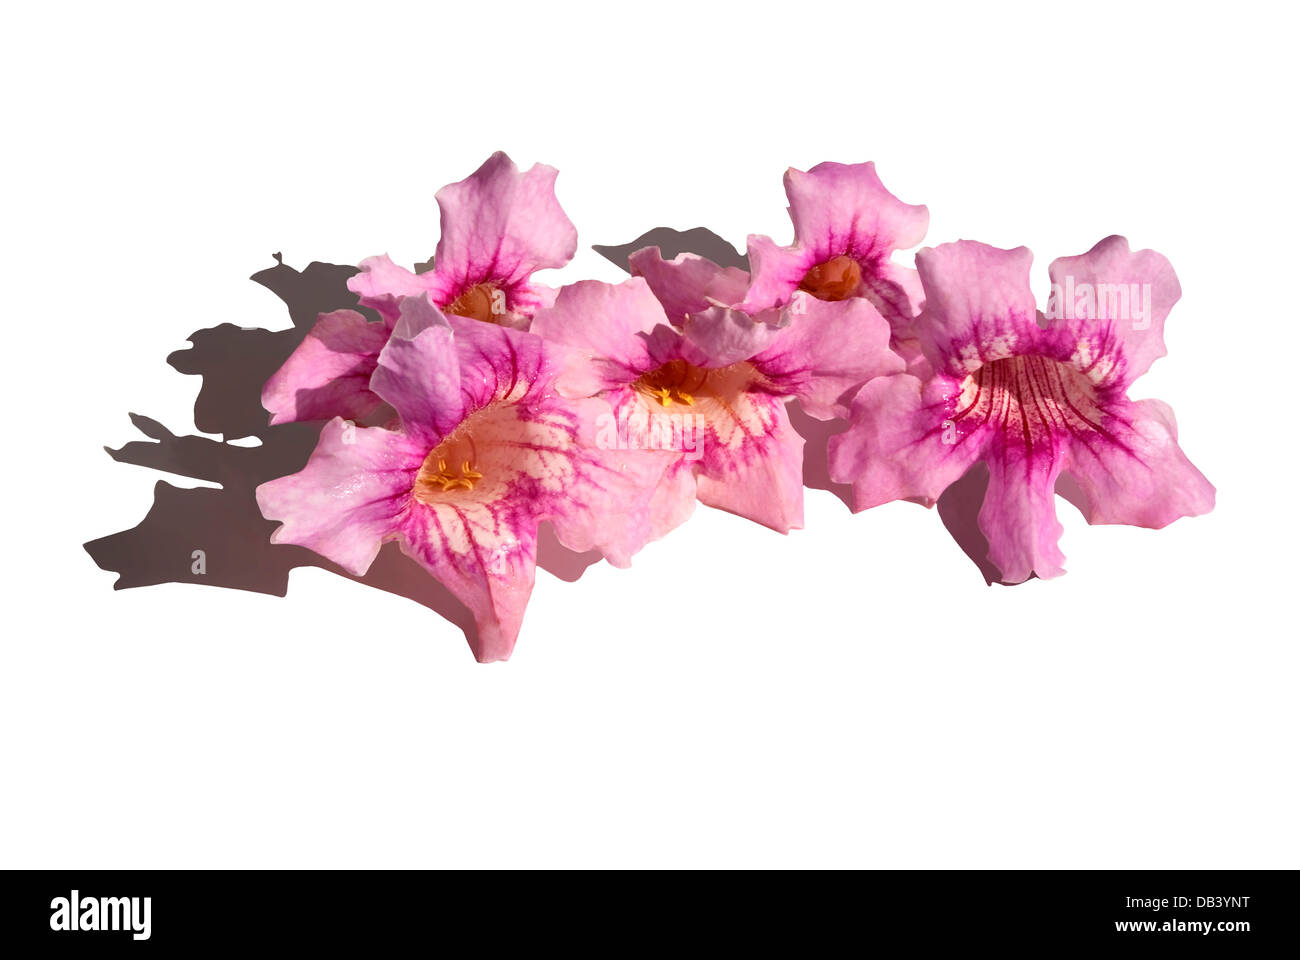 Flowers of pink color, with bell-shaped. Podranea ricasoliana - Stock Image